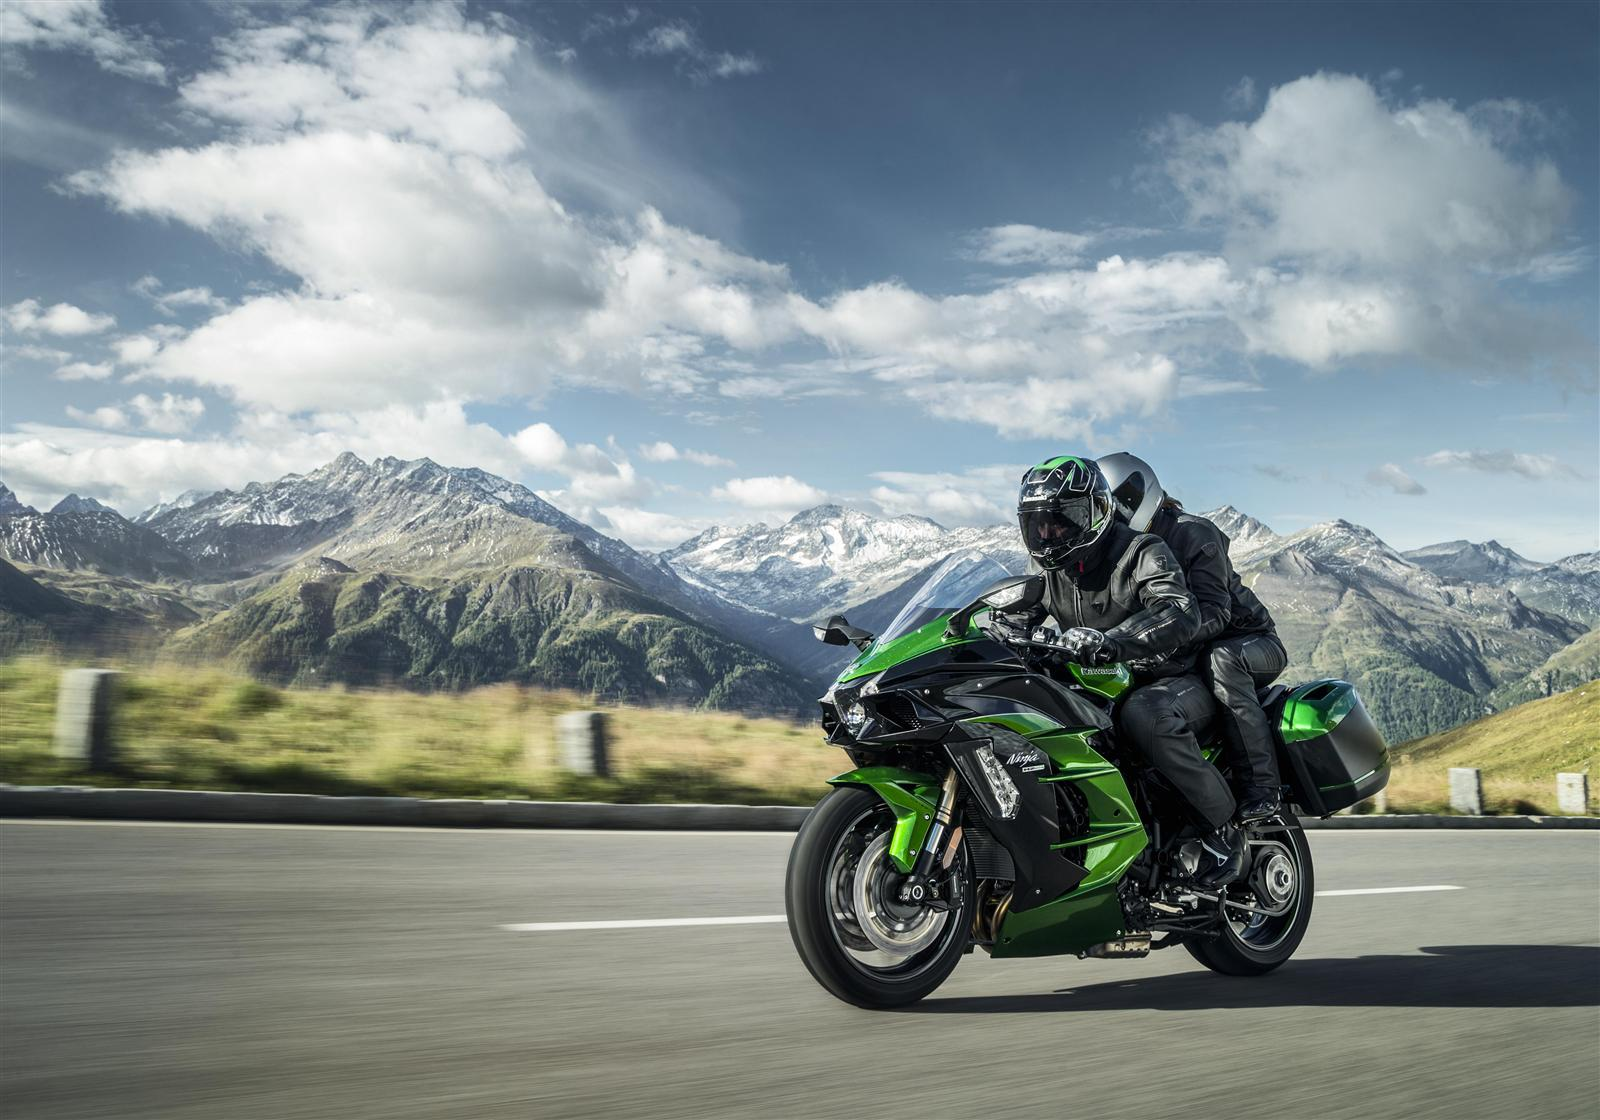 2018 Kawasaki Ninja H2 SX - is a 200 PS, supercharged sports-tourer too much?